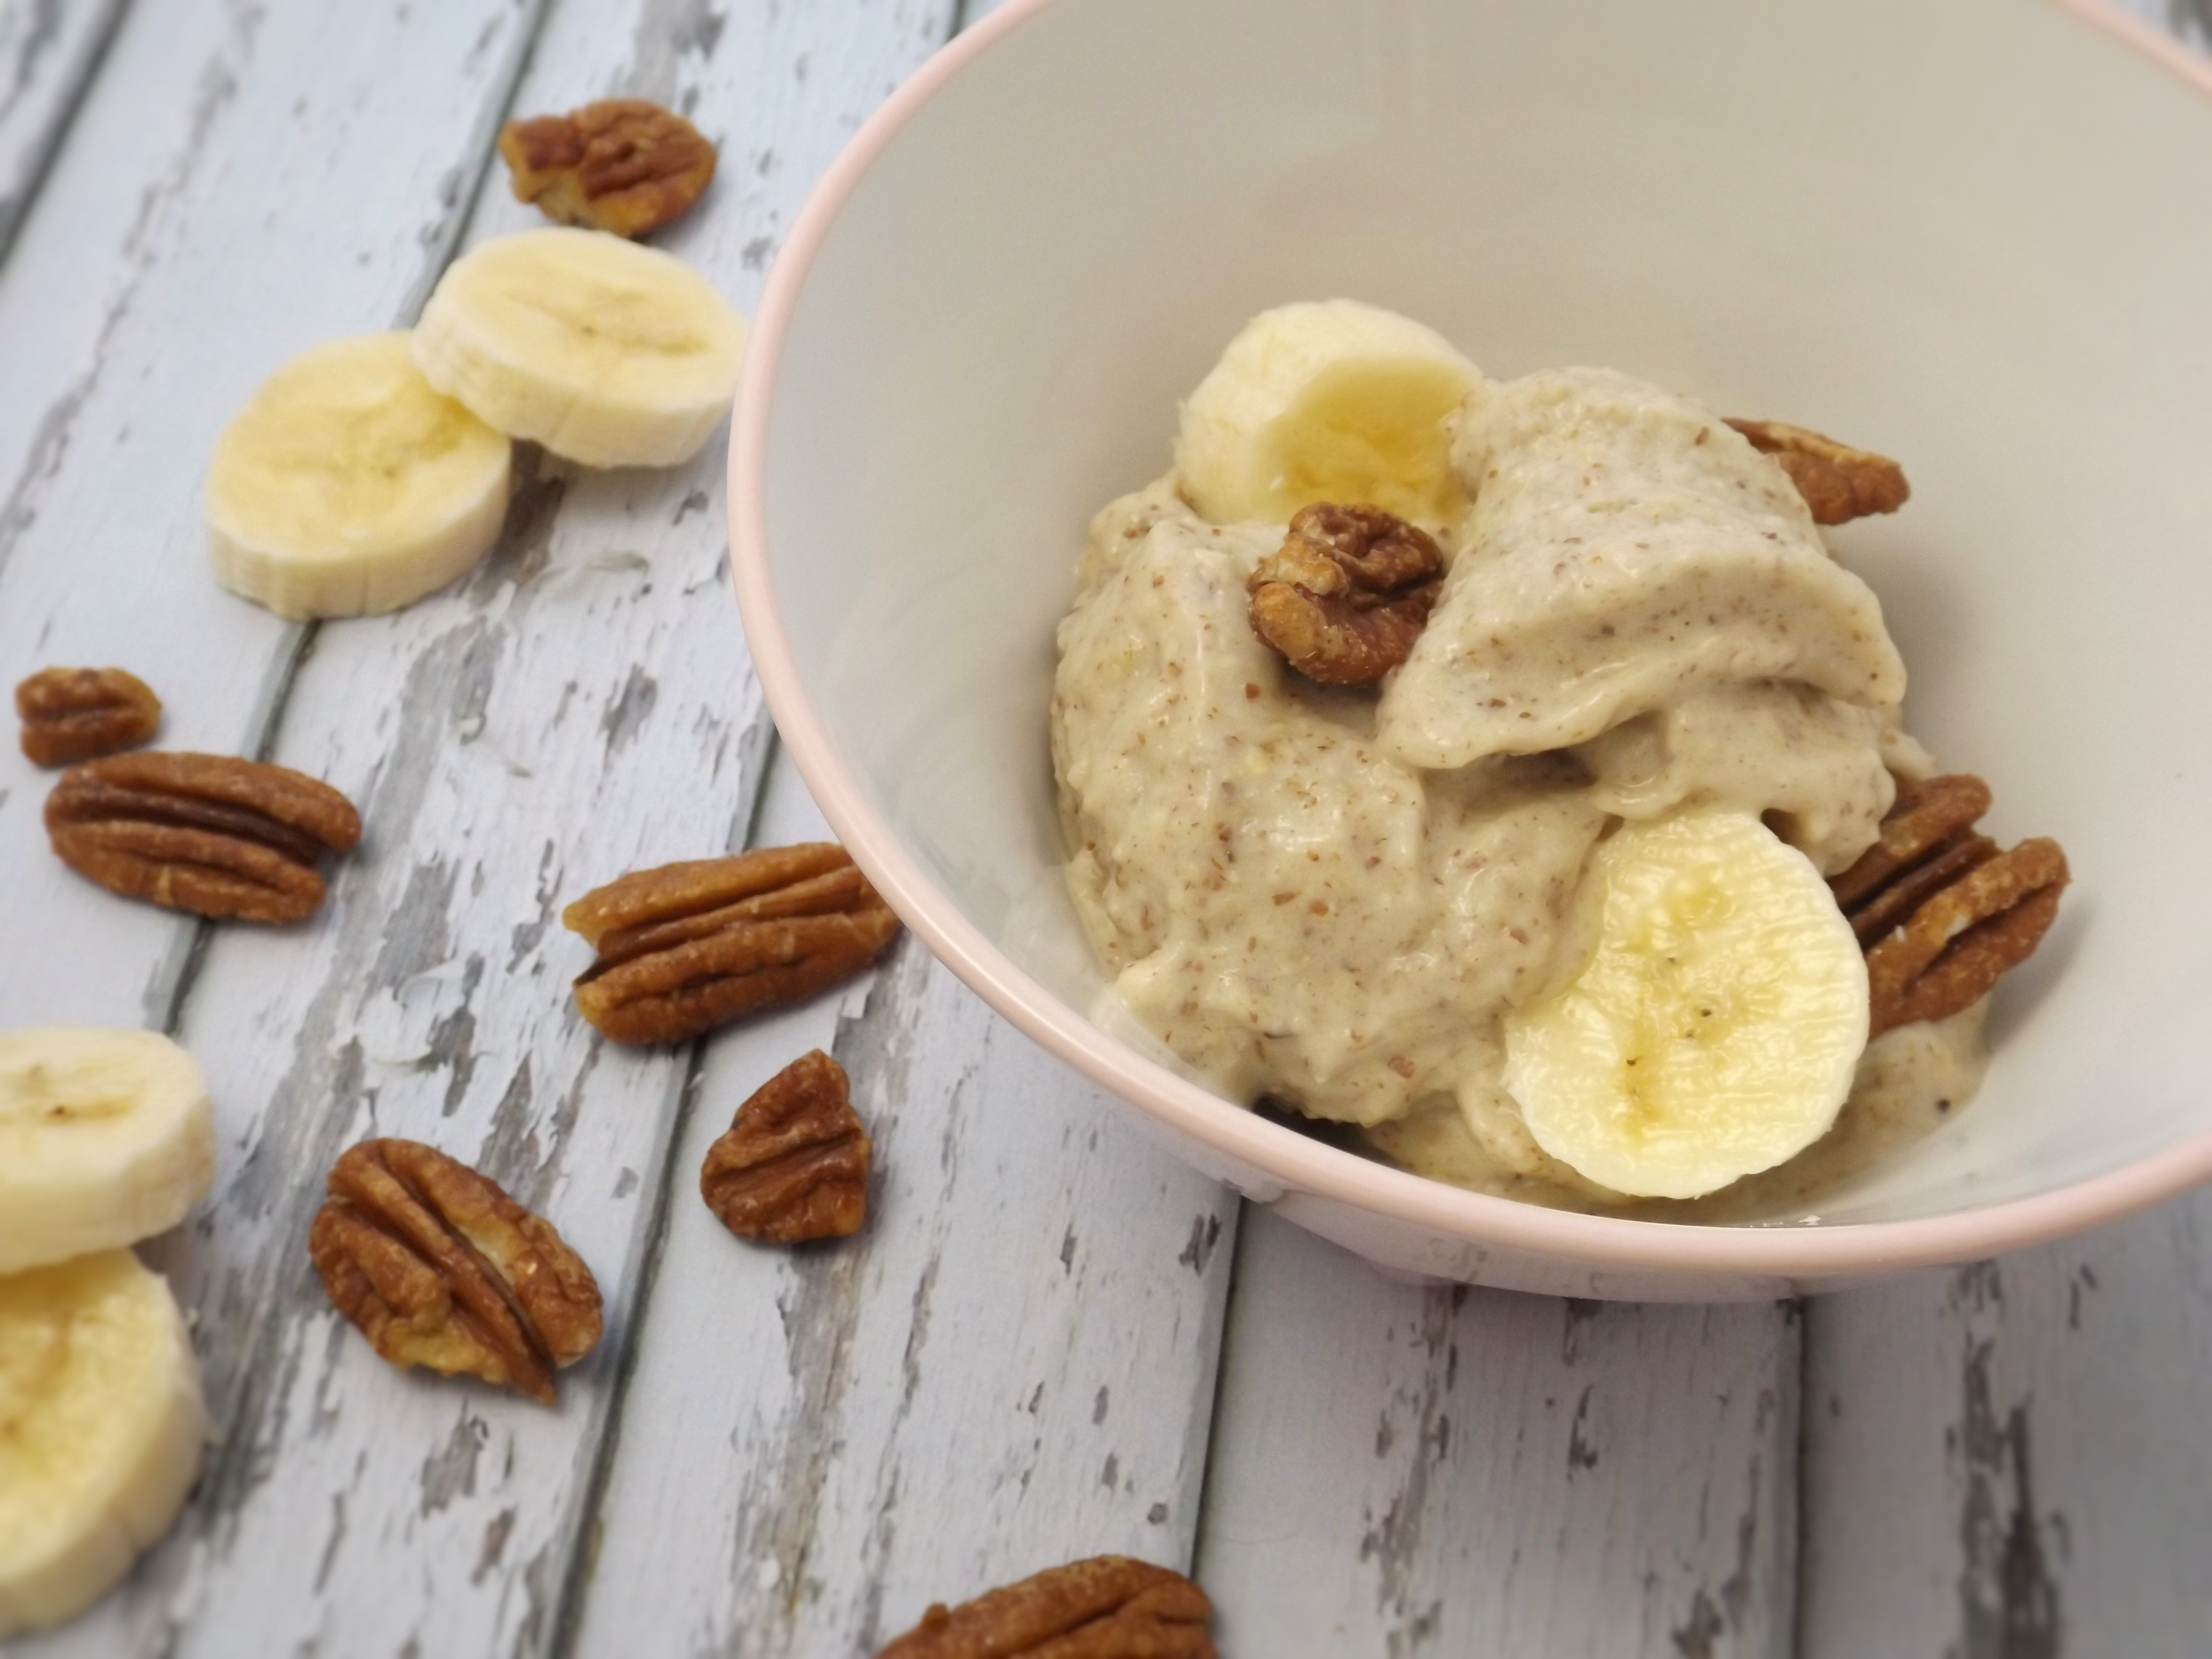 ... ice cream but this simple recipe is totally guilt free. In fact it's